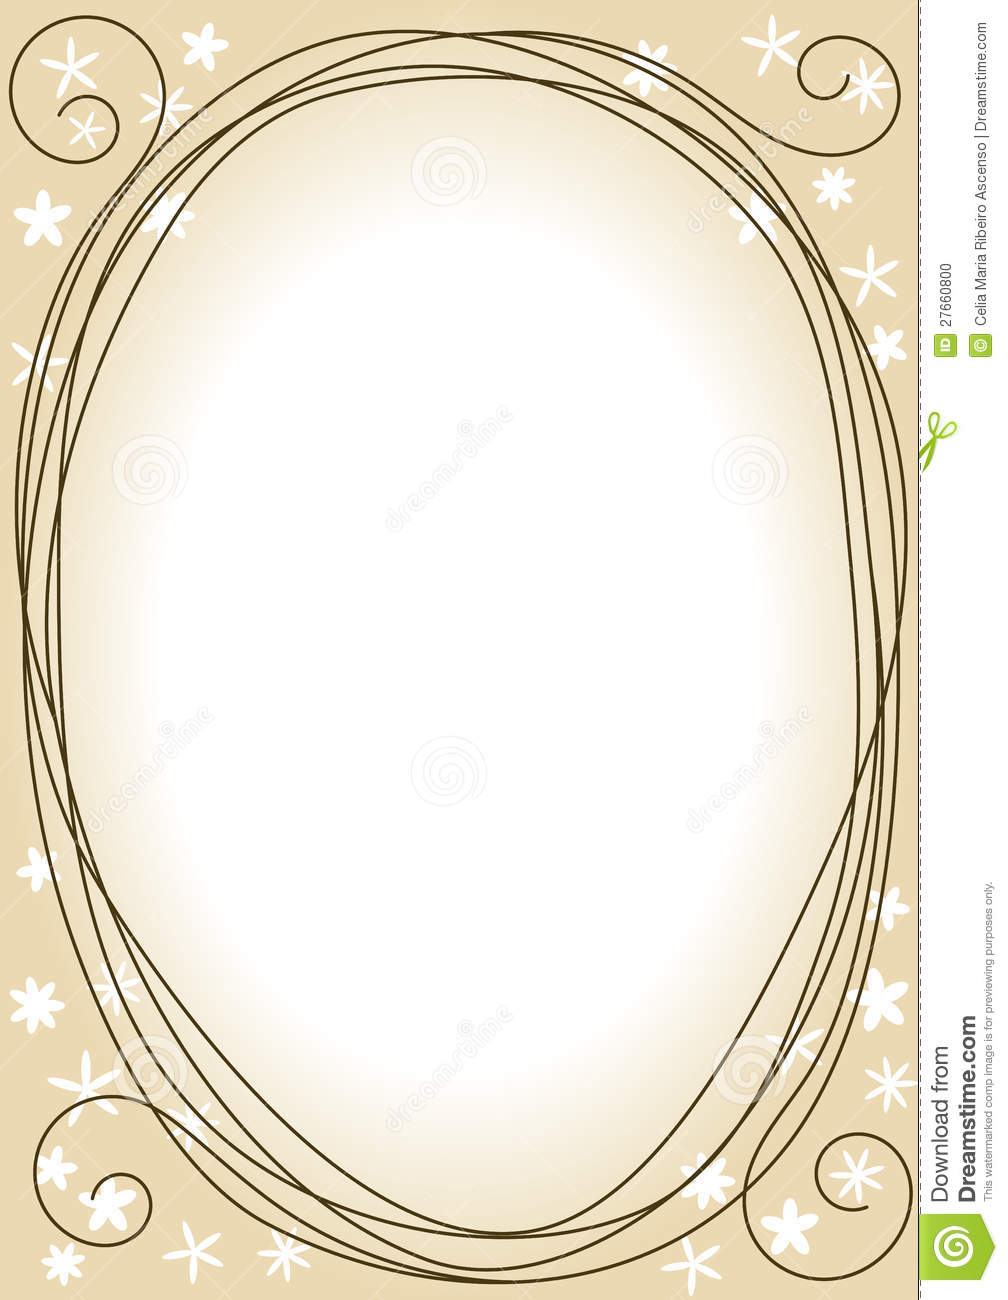 Swirls Border Frame With Flower Silhouettes Stock Photo